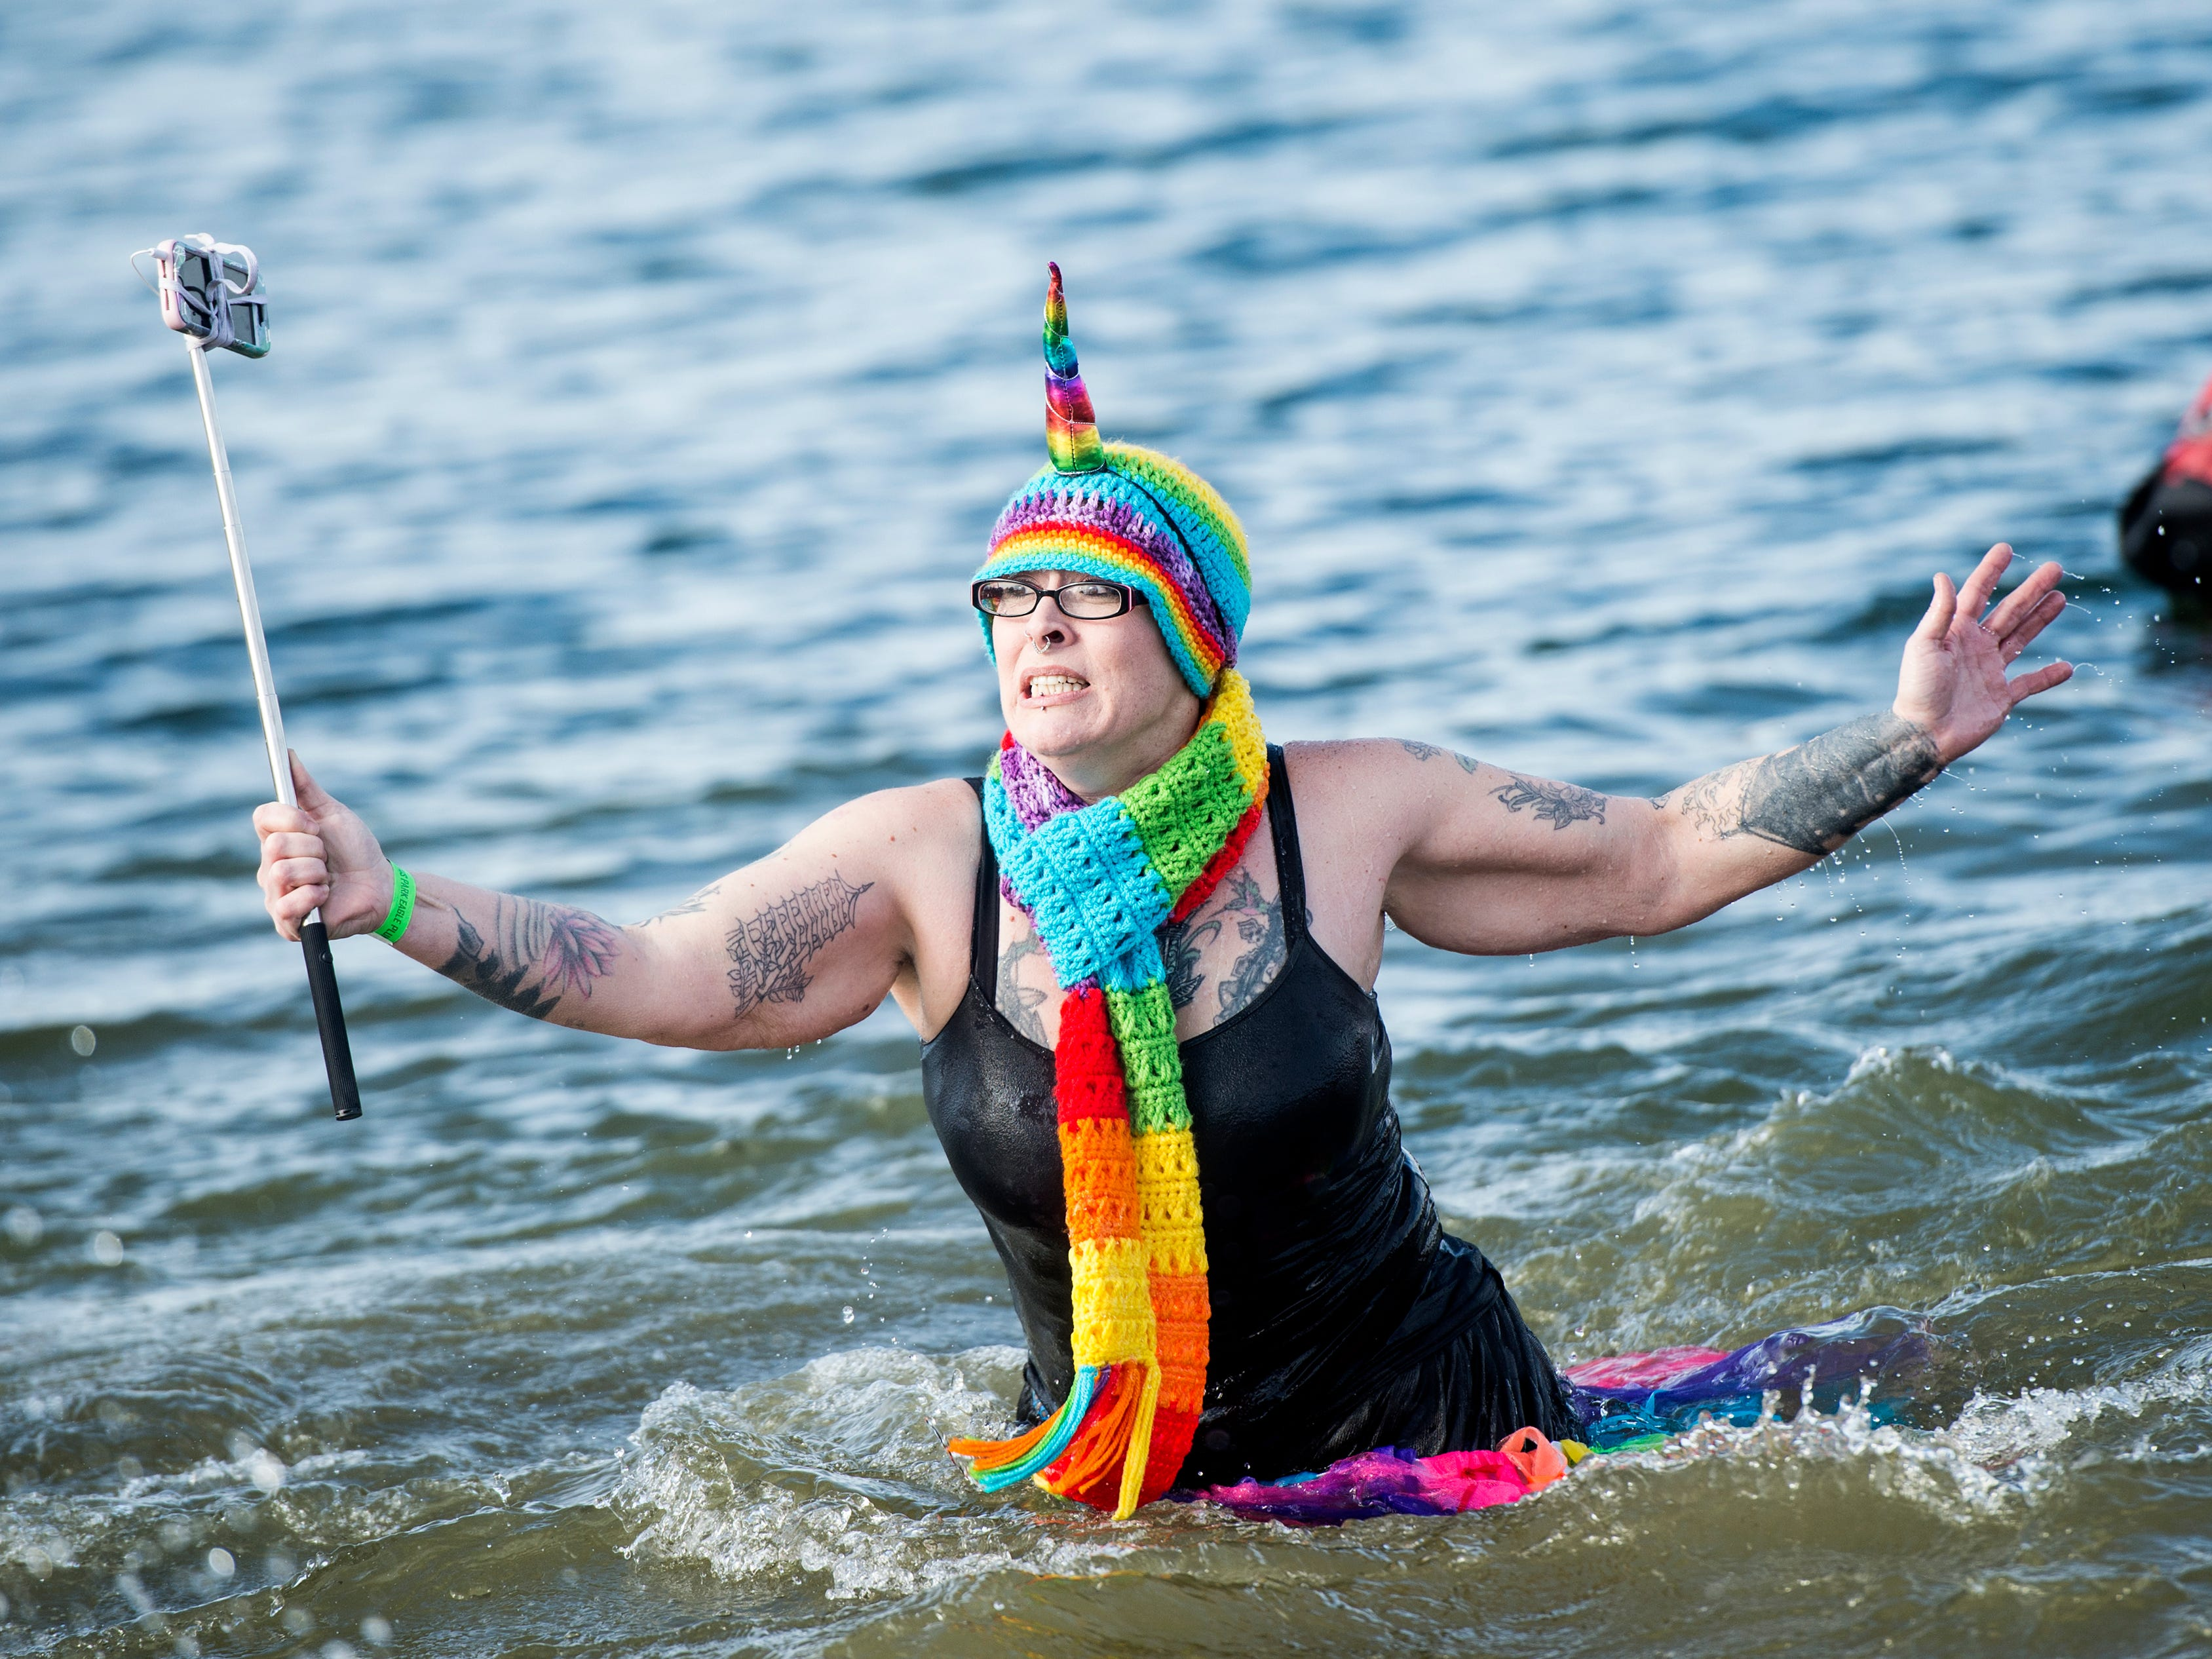 A participant in the eagle plunge reacts to the cold water after running in while holding a selfie stick. The water was measured at 34-degrees, Saturday, Jan. 27, 2018. The Codorus annual Winter Festival was full of different events and attractions, including ice carving, chainsaw carving, the eagle plunge, horse-drawn carriage rides and music.